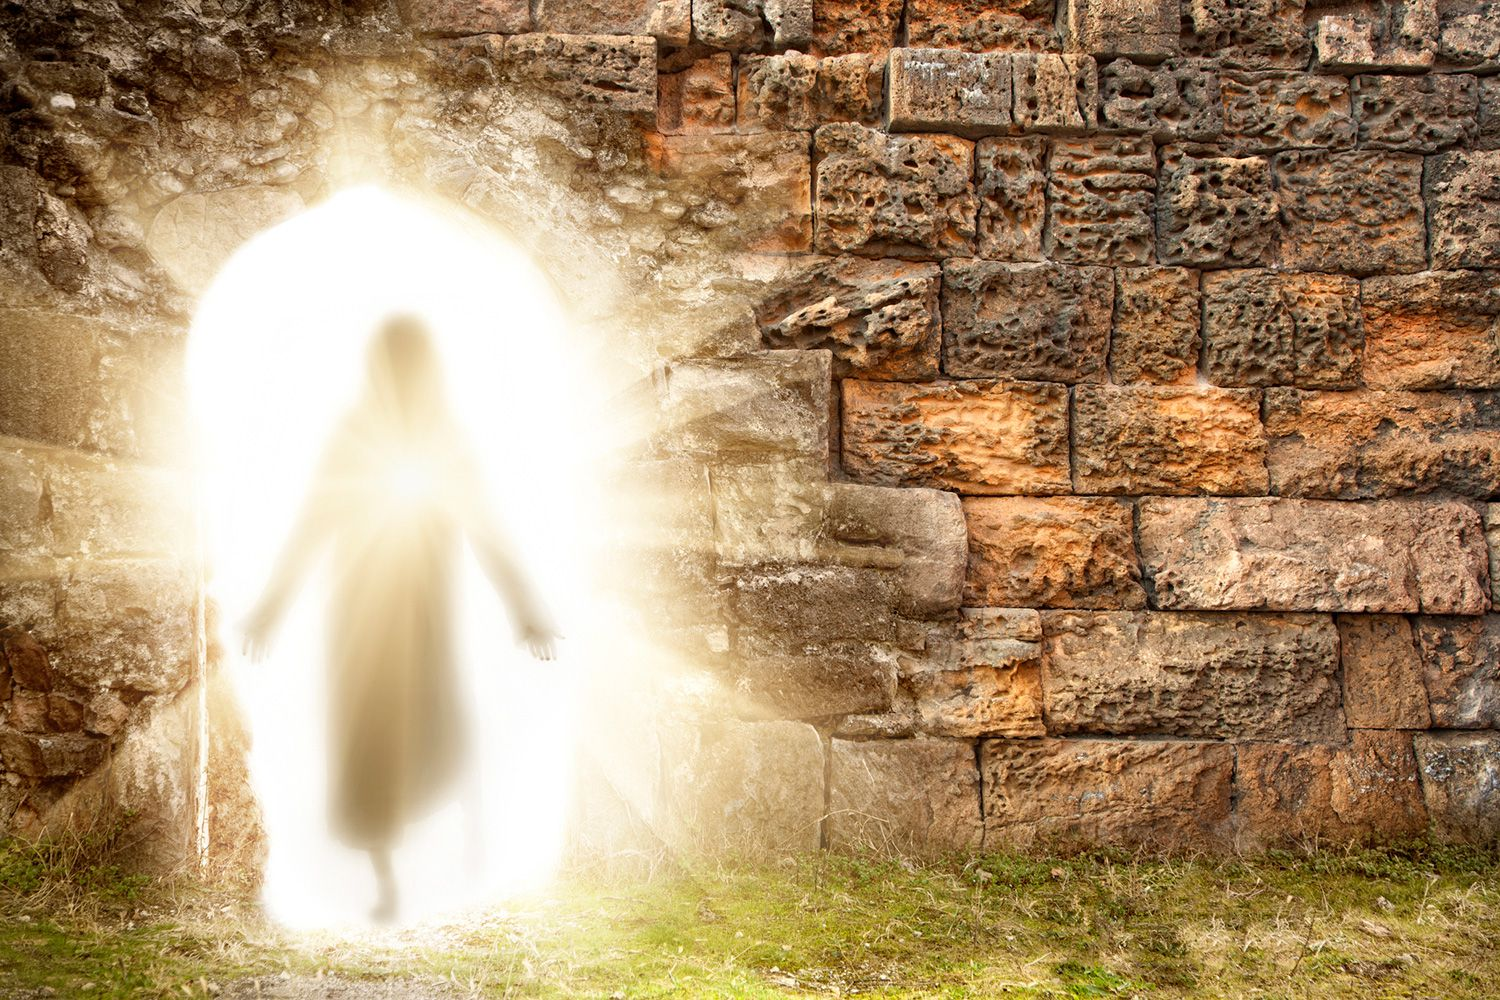 happy easter wishes resurrected jesus alive risen from dead hd wallpaper